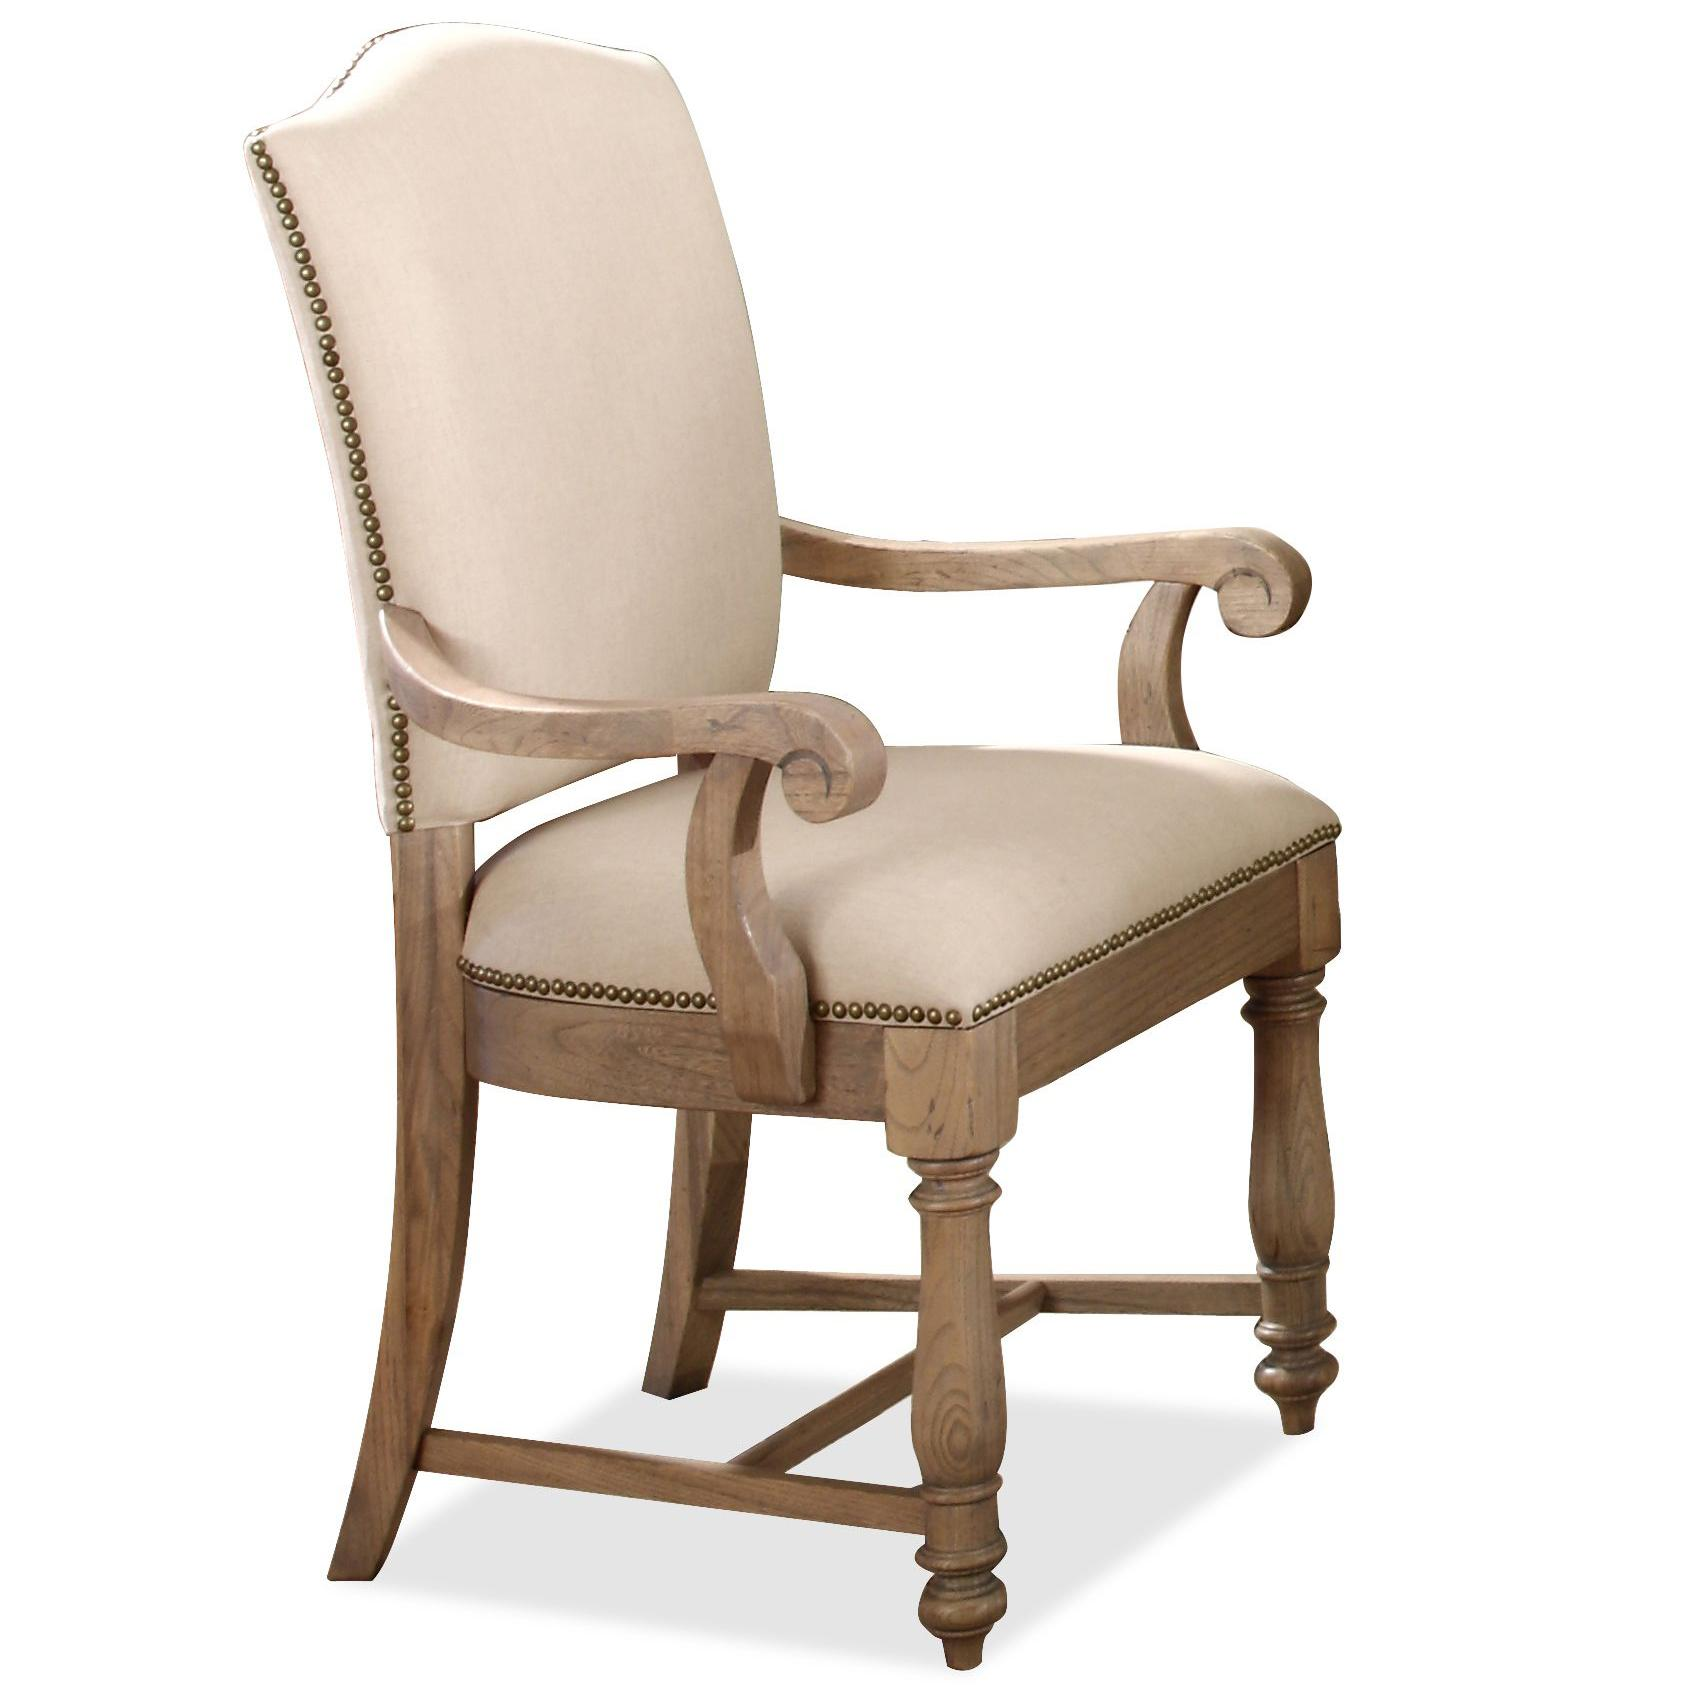 Upholstered Accent Chairs With Arms Upholstered Arm Chair With Hammered Nail Head Trim By